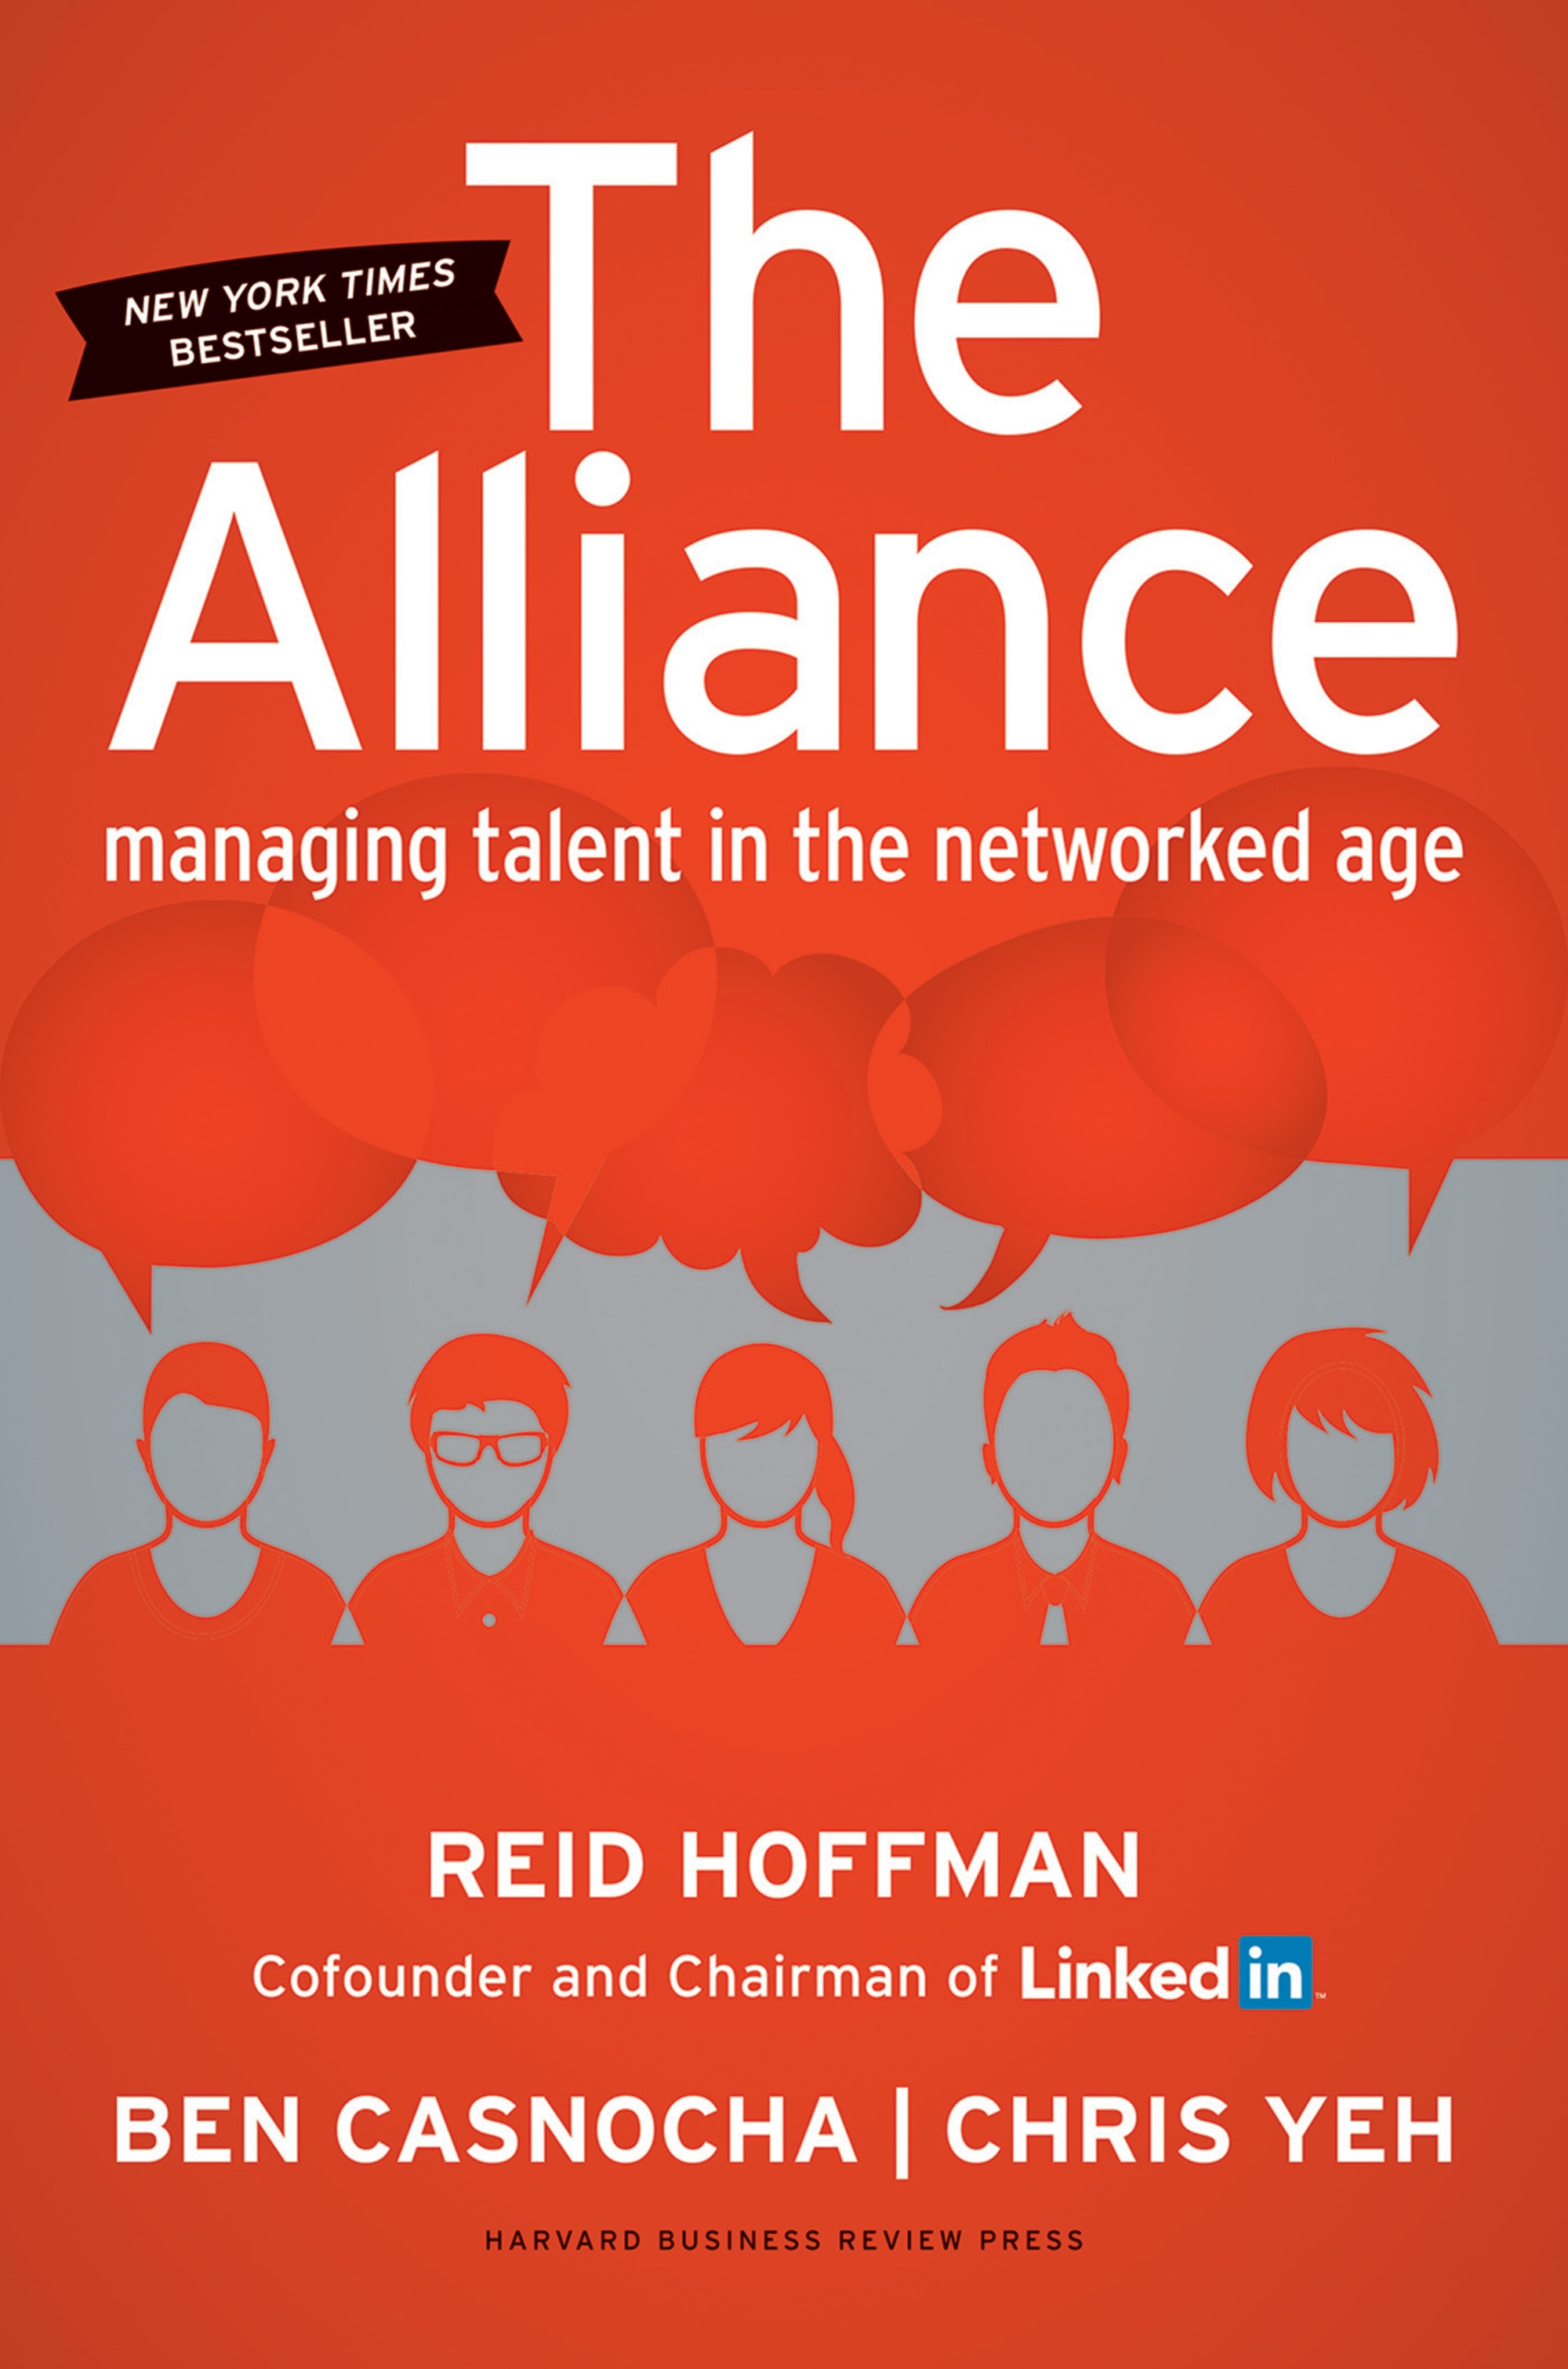 Book Cover of The Alliance